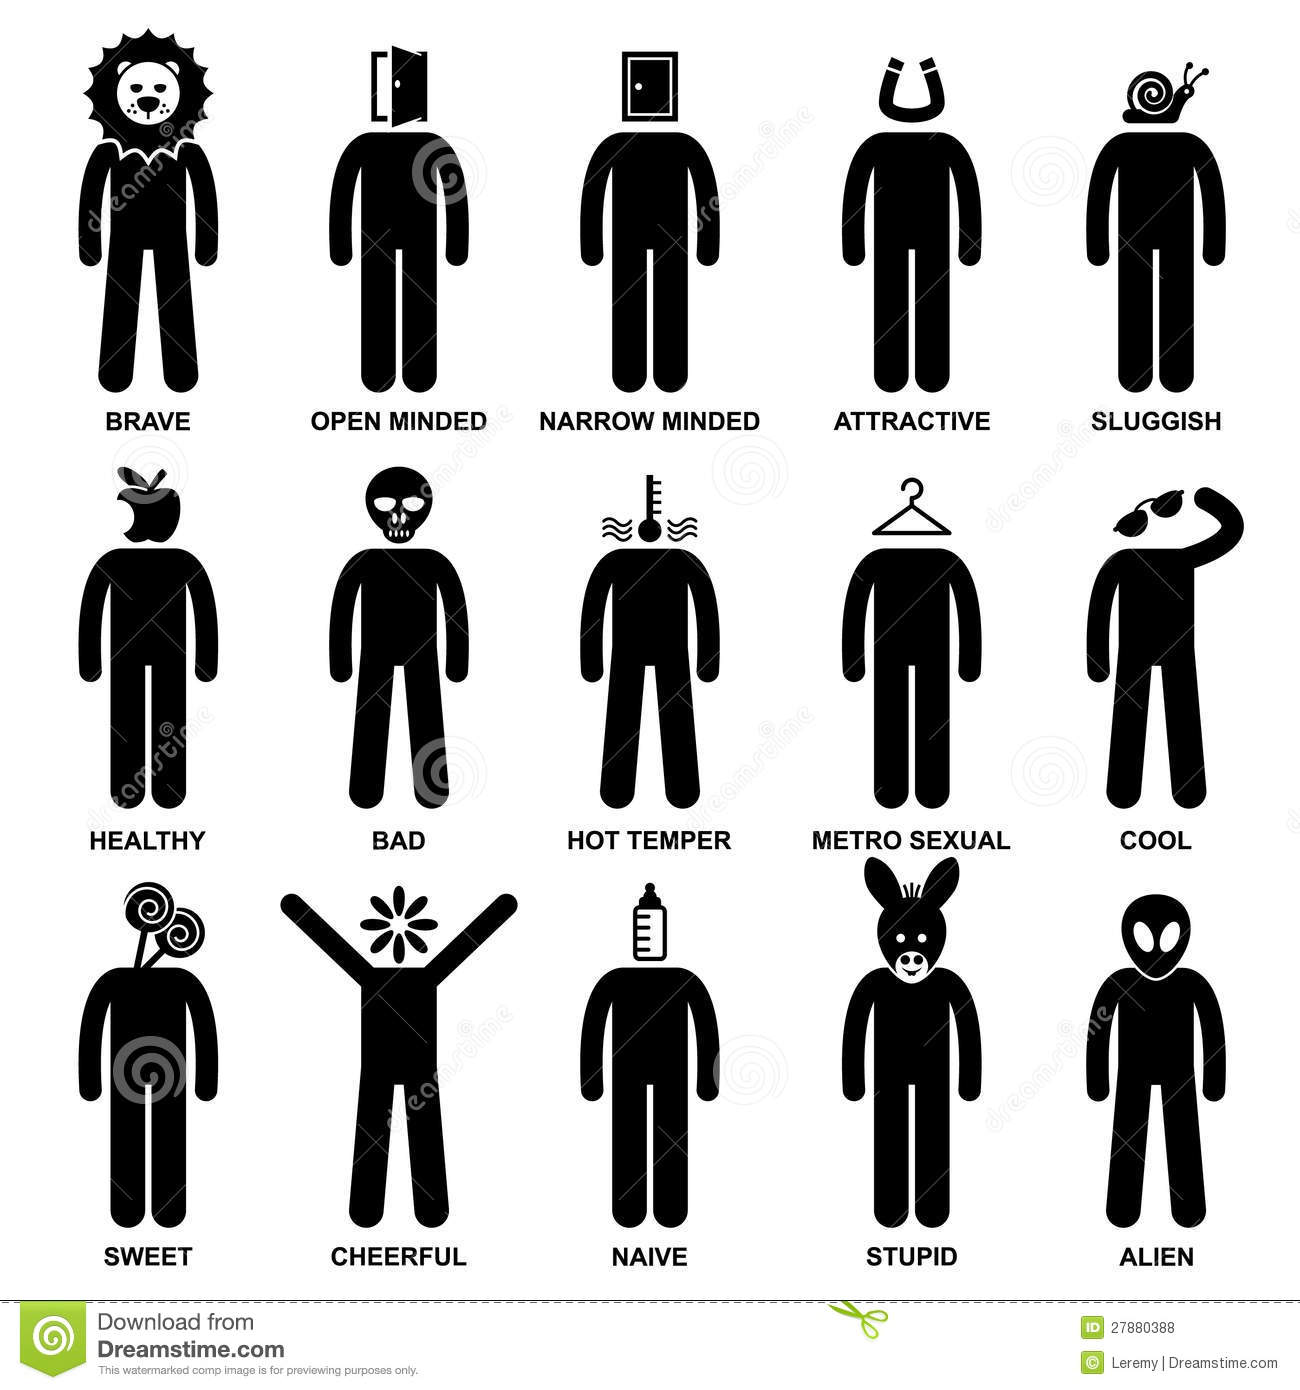 people-man-characteristic-attitude-pictogram-27880388.jpg (800×800)